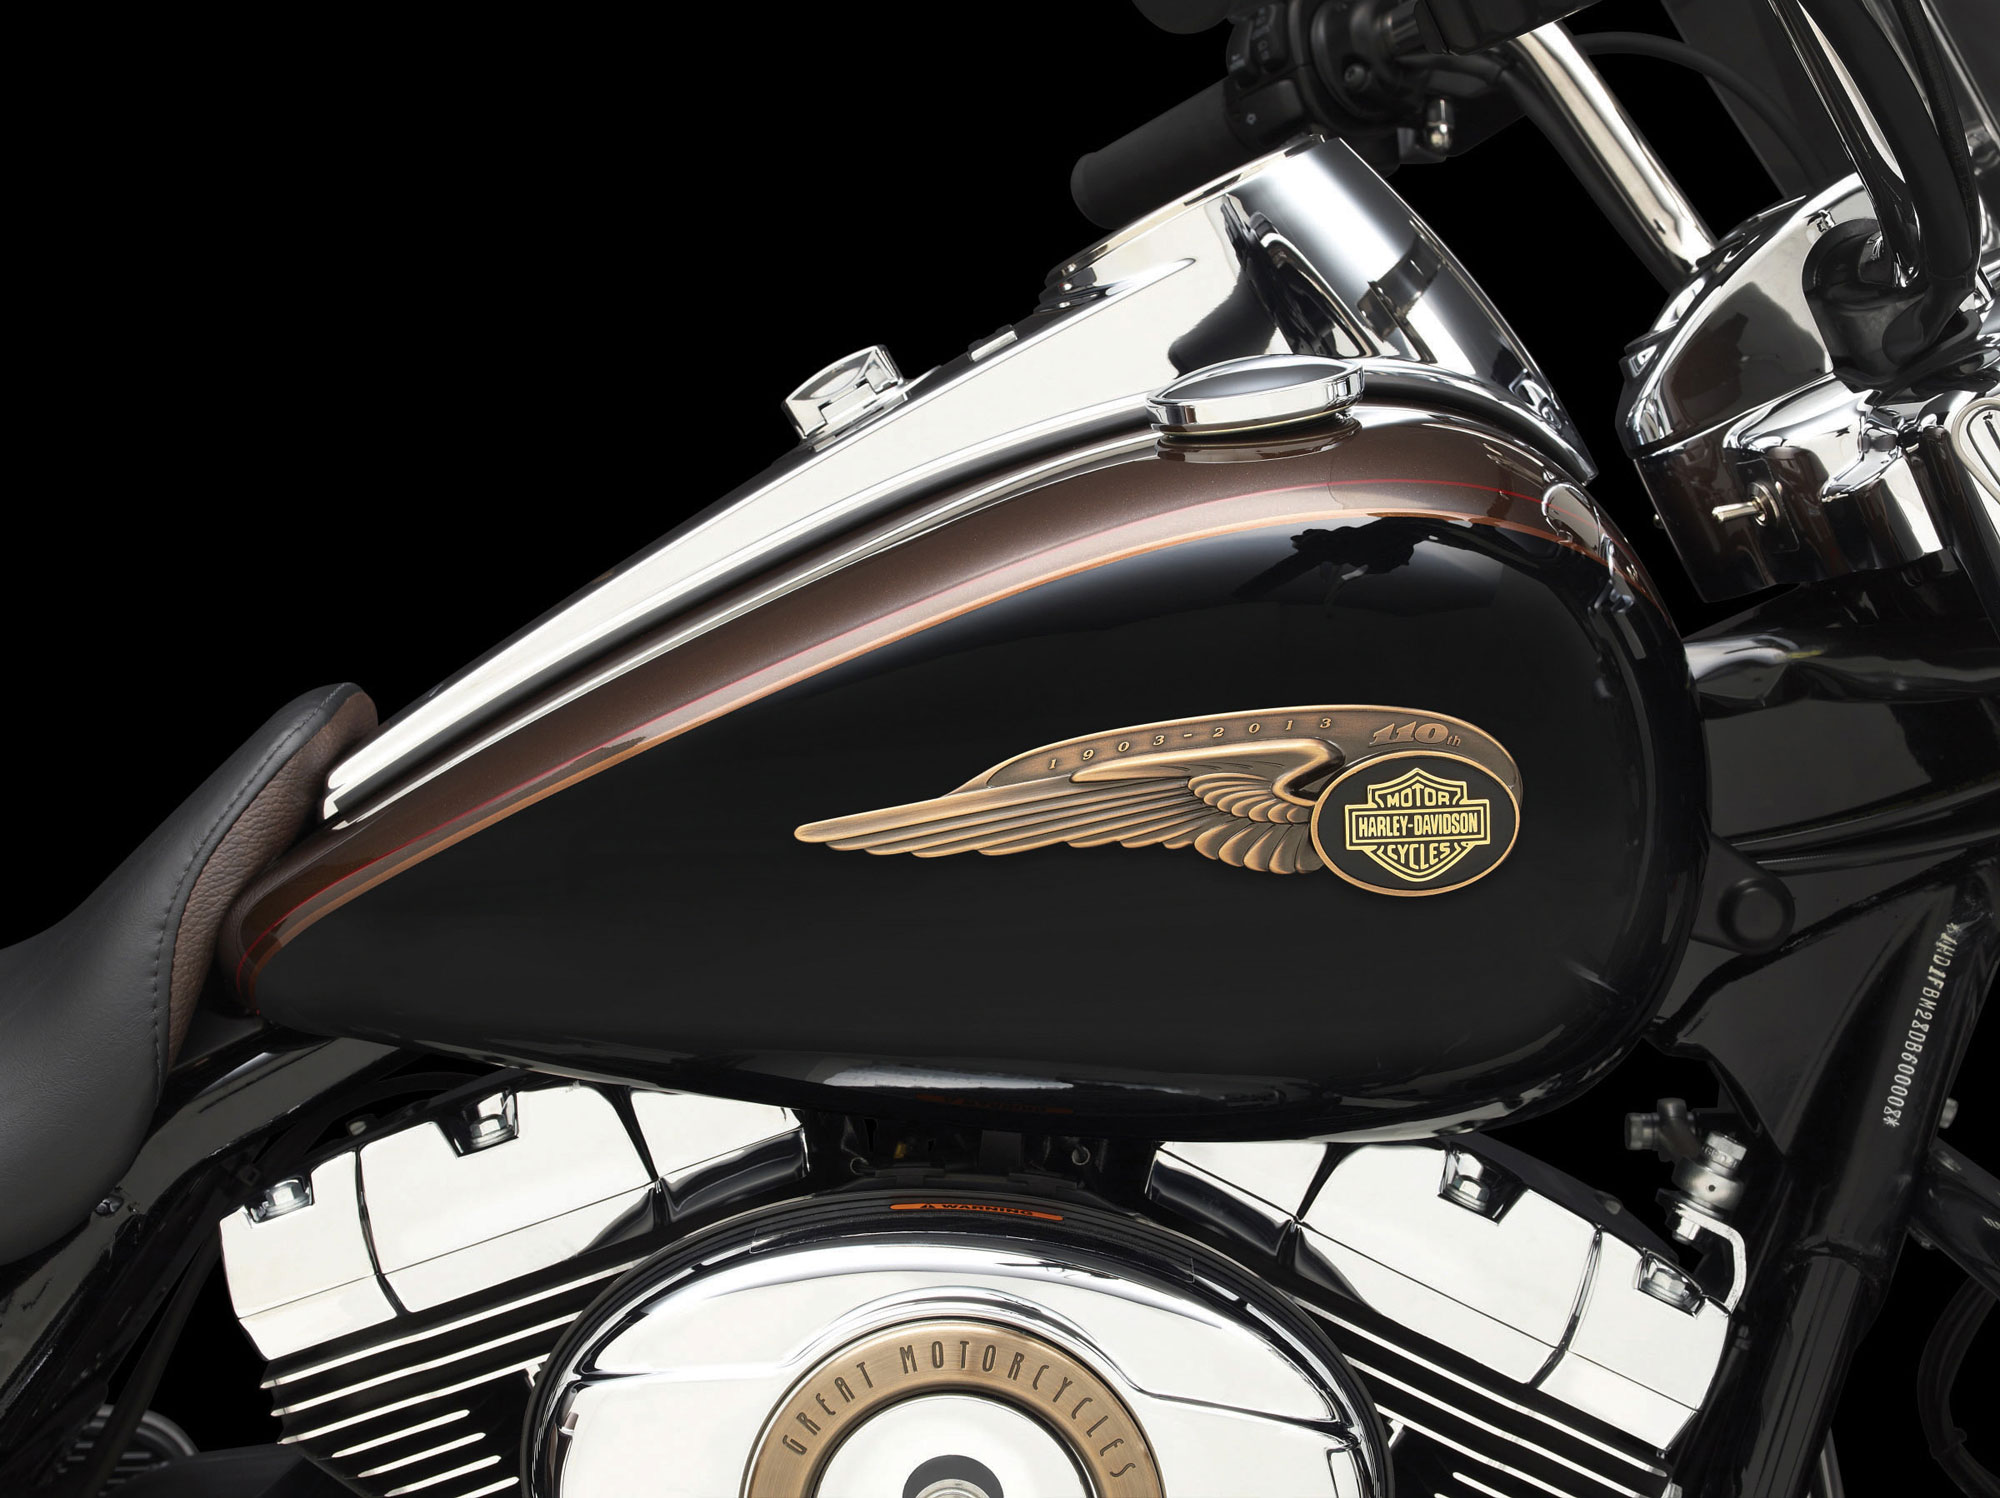 Harley-Davidson FLHR Road King 110th Anniversary 2013 images #81563